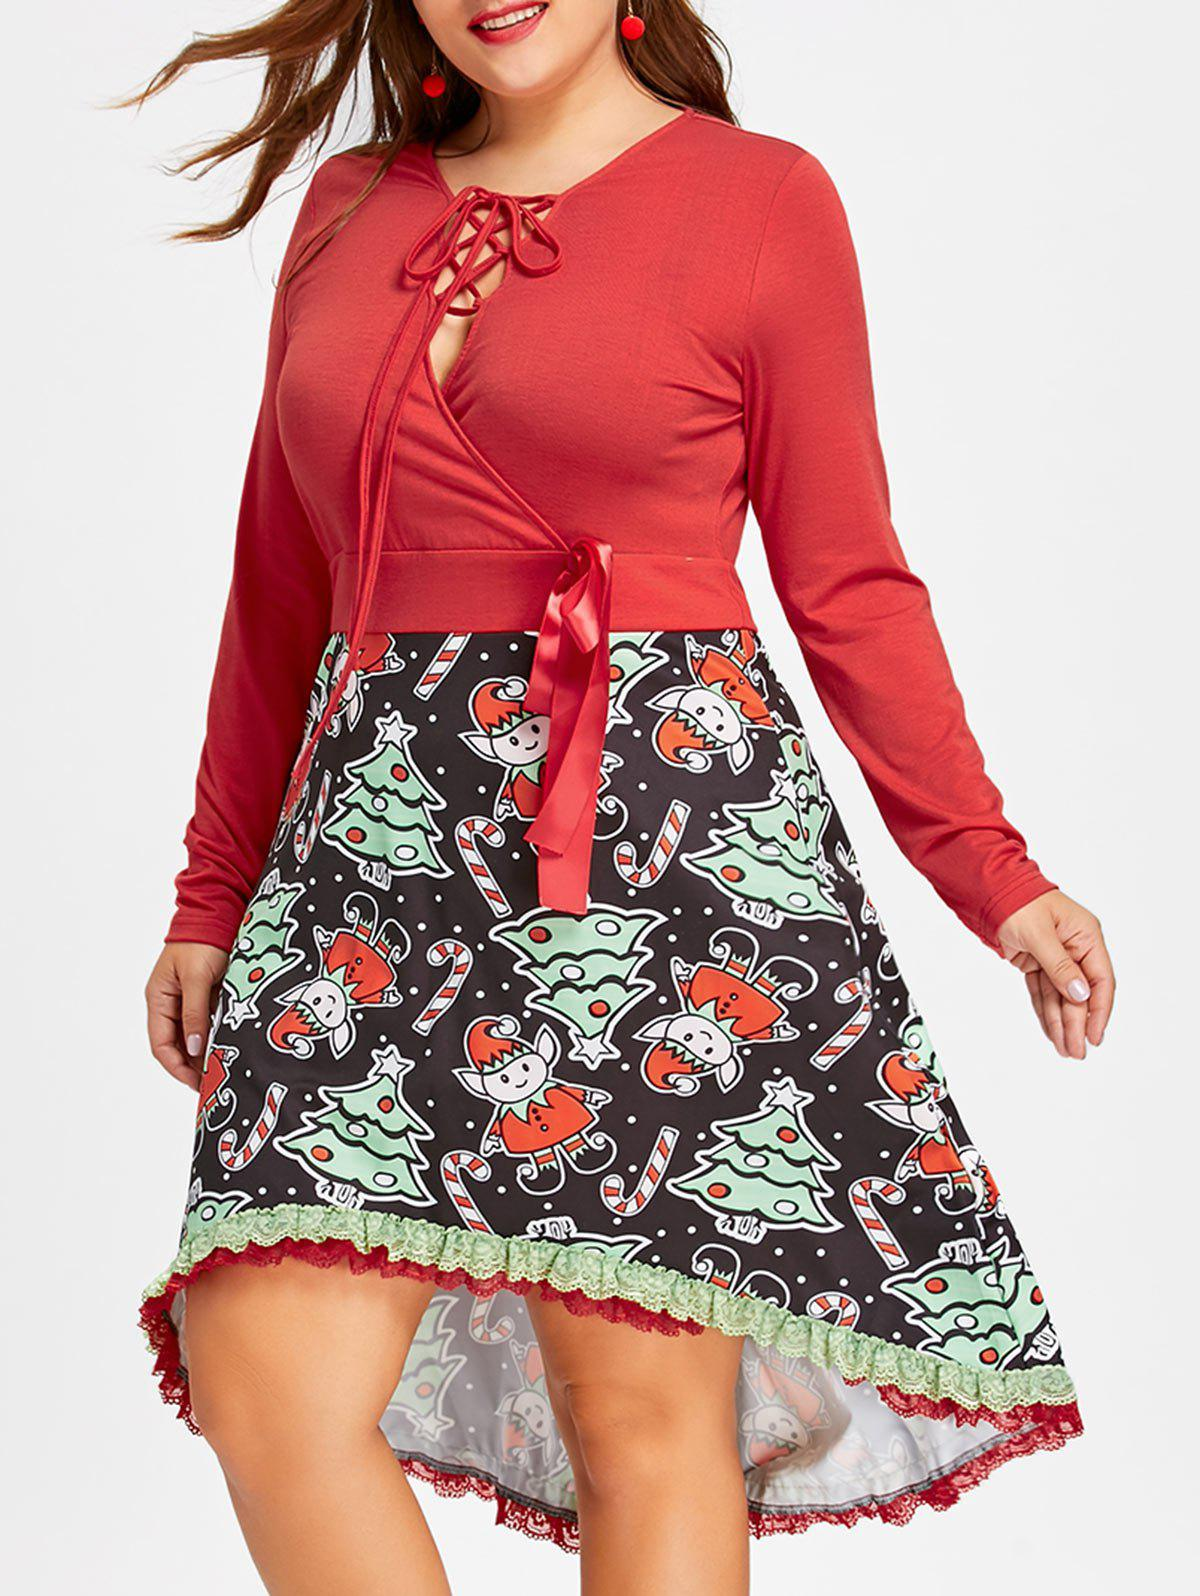 Christmas Plus Size High Low DressWOMEN<br><br>Size: 3XL; Color: RED; Style: Vintage; Material: Rayon,Spandex; Silhouette: A-Line; Dresses Length: Knee-Length; Neckline: Plunging Neck; Sleeve Length: Long Sleeves; Embellishment: Lace; Pattern Type: Character; With Belt: No; Season: Fall,Spring; Weight: 0.4700kg; Package Contents: 1 x Dress;